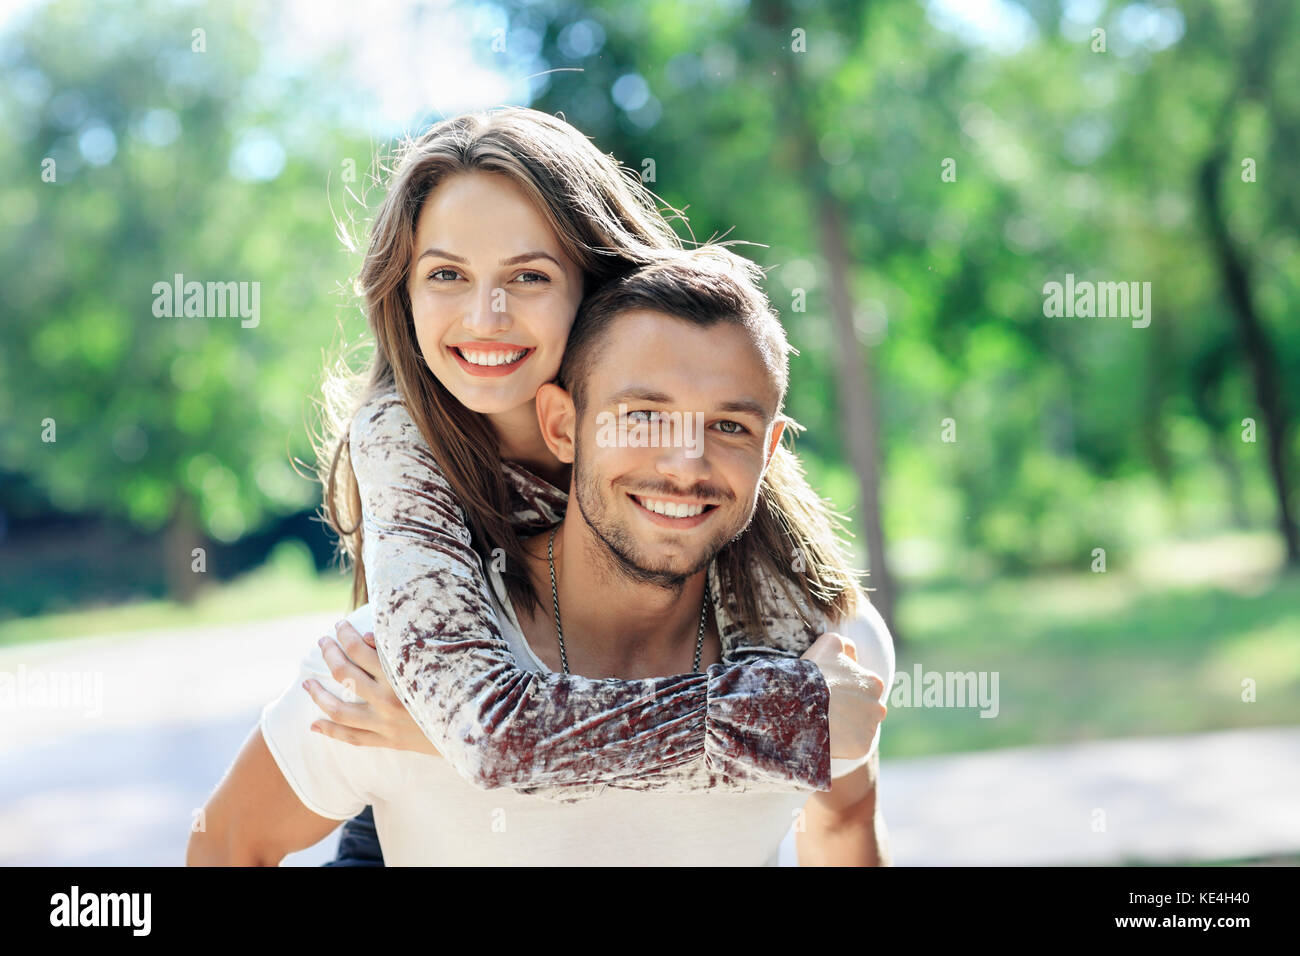 Les amateurs de plein air portrait of happy young man and woman looking at camera. Smiling girl profiter de son Photo Stock